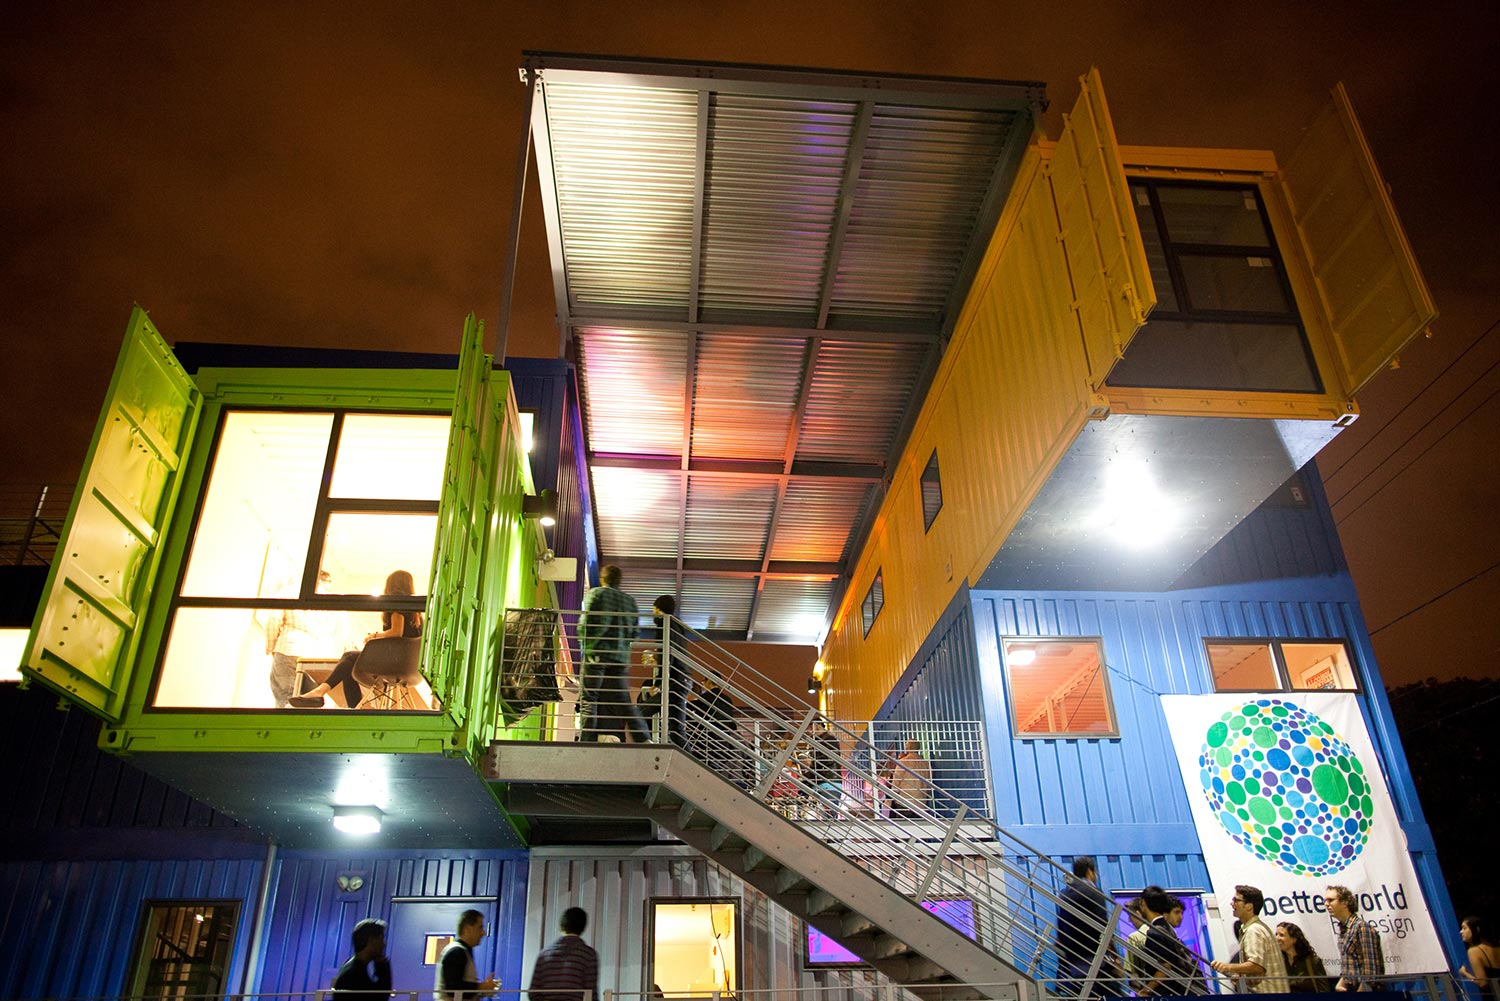 Box-Office_Container-Office-Building-Better-World-Design-Event_Klopfer-Martin.jpg